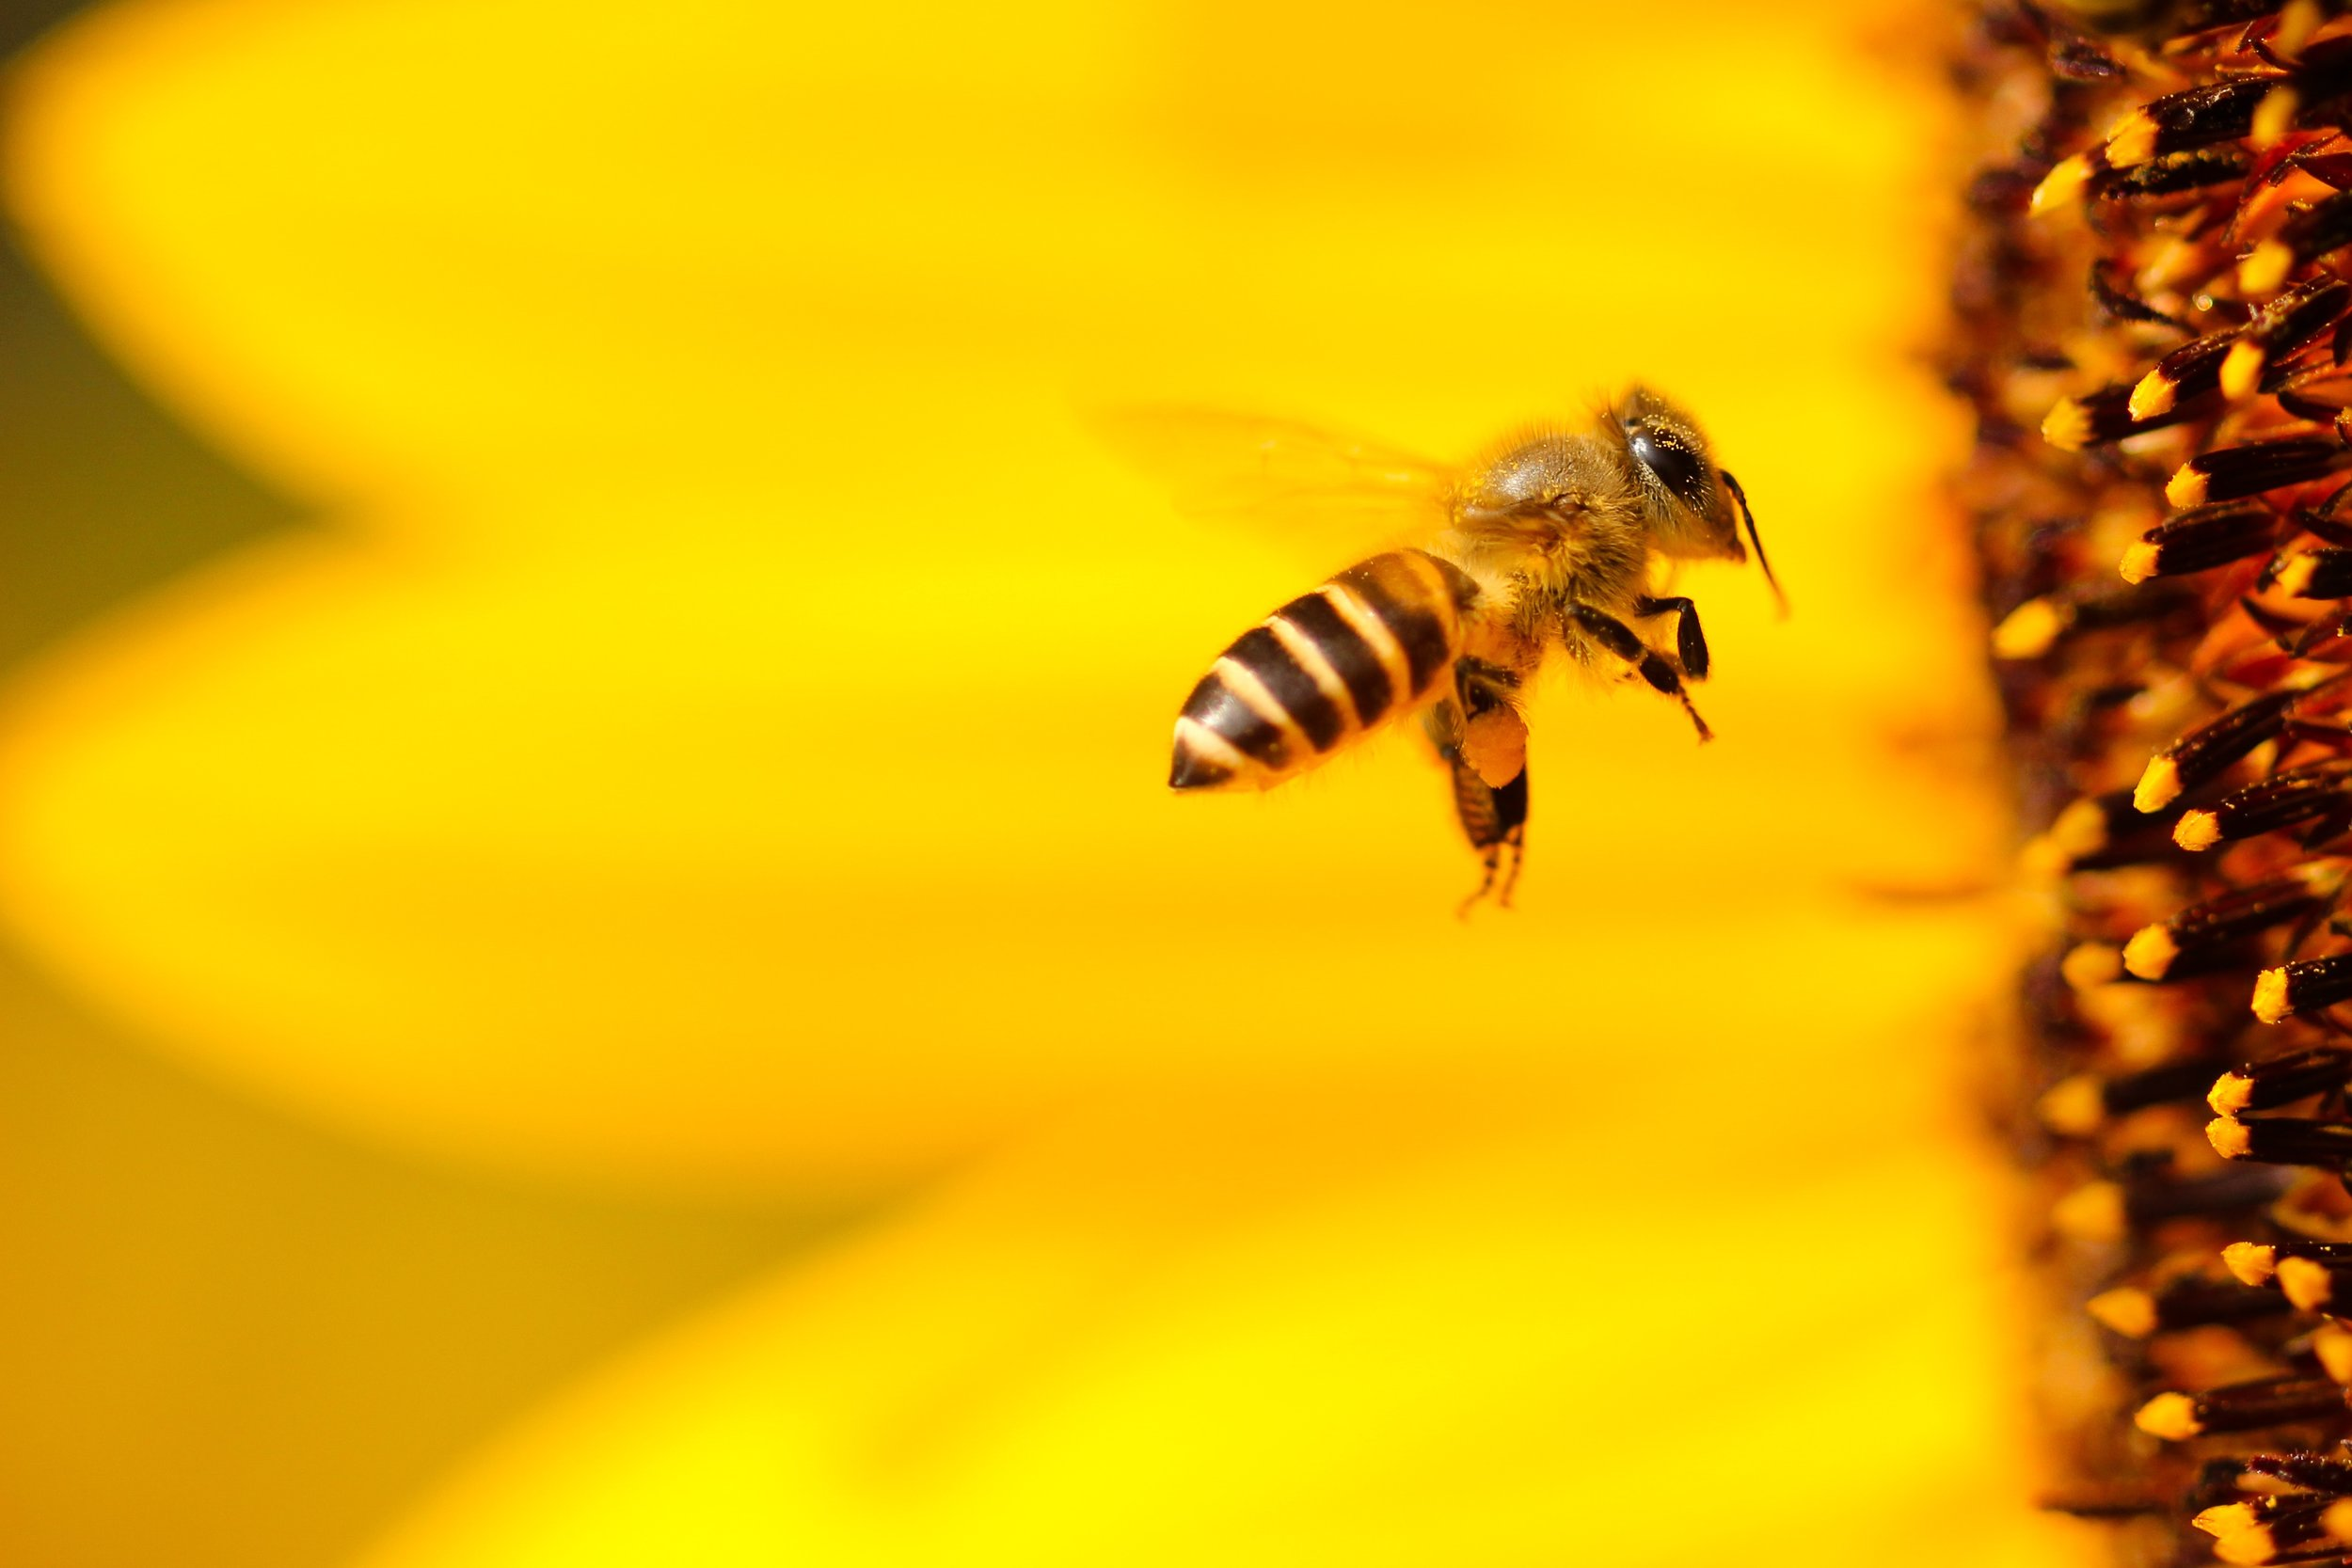 One of every three bites of food we take depend on the work of pollinators like the honey bee. In the US, it's estimated that the work of pollinating by honey bees, native regional bees, and other insects is valued at $20 billion annually.